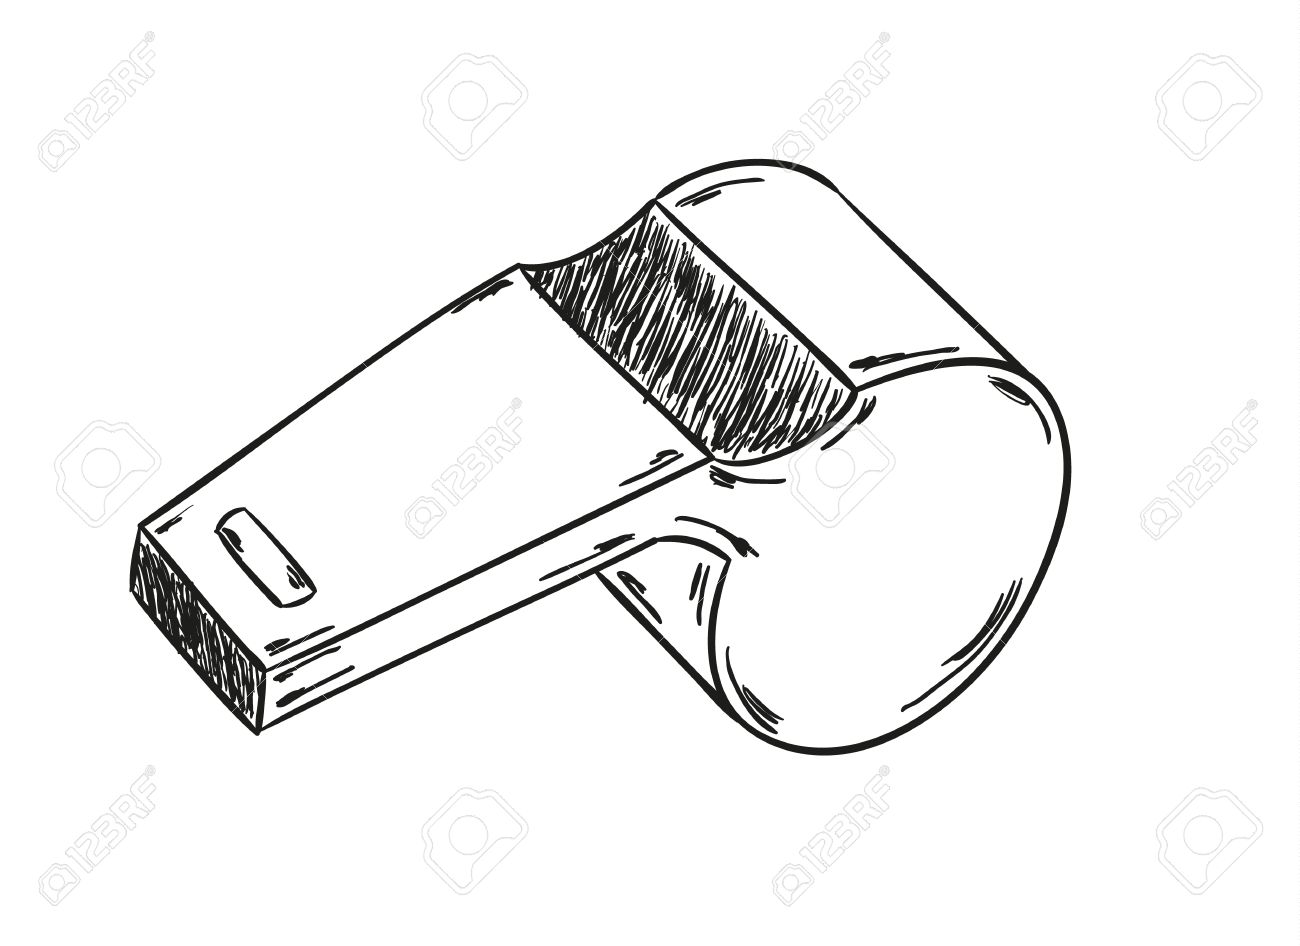 1300x946 Sketch Of The Whistle On The Black Background Royalty Free